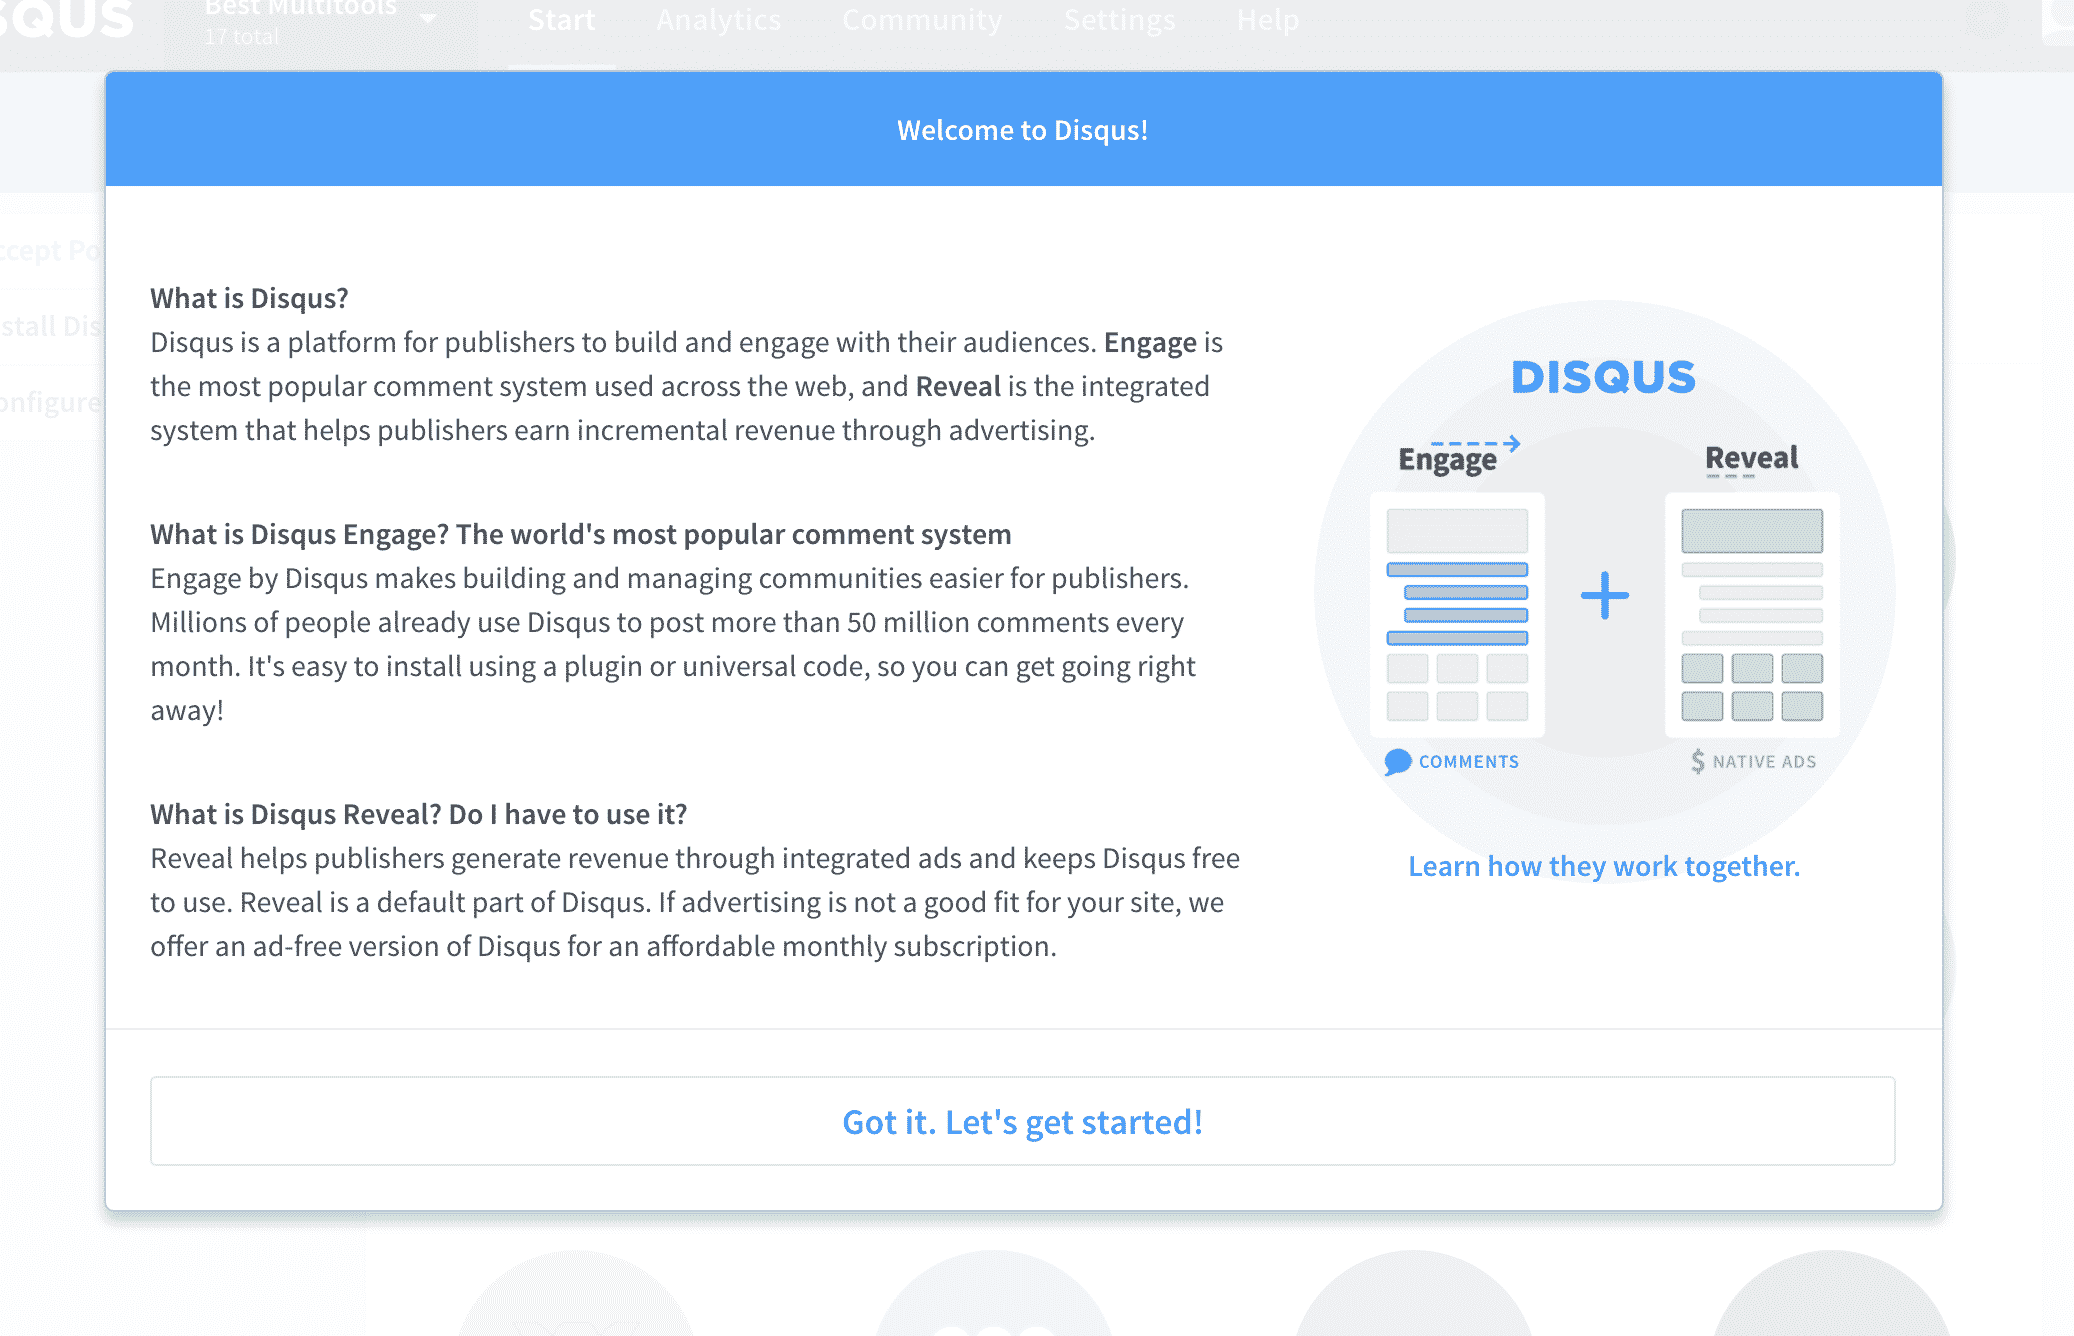 Disqus Welcome Message